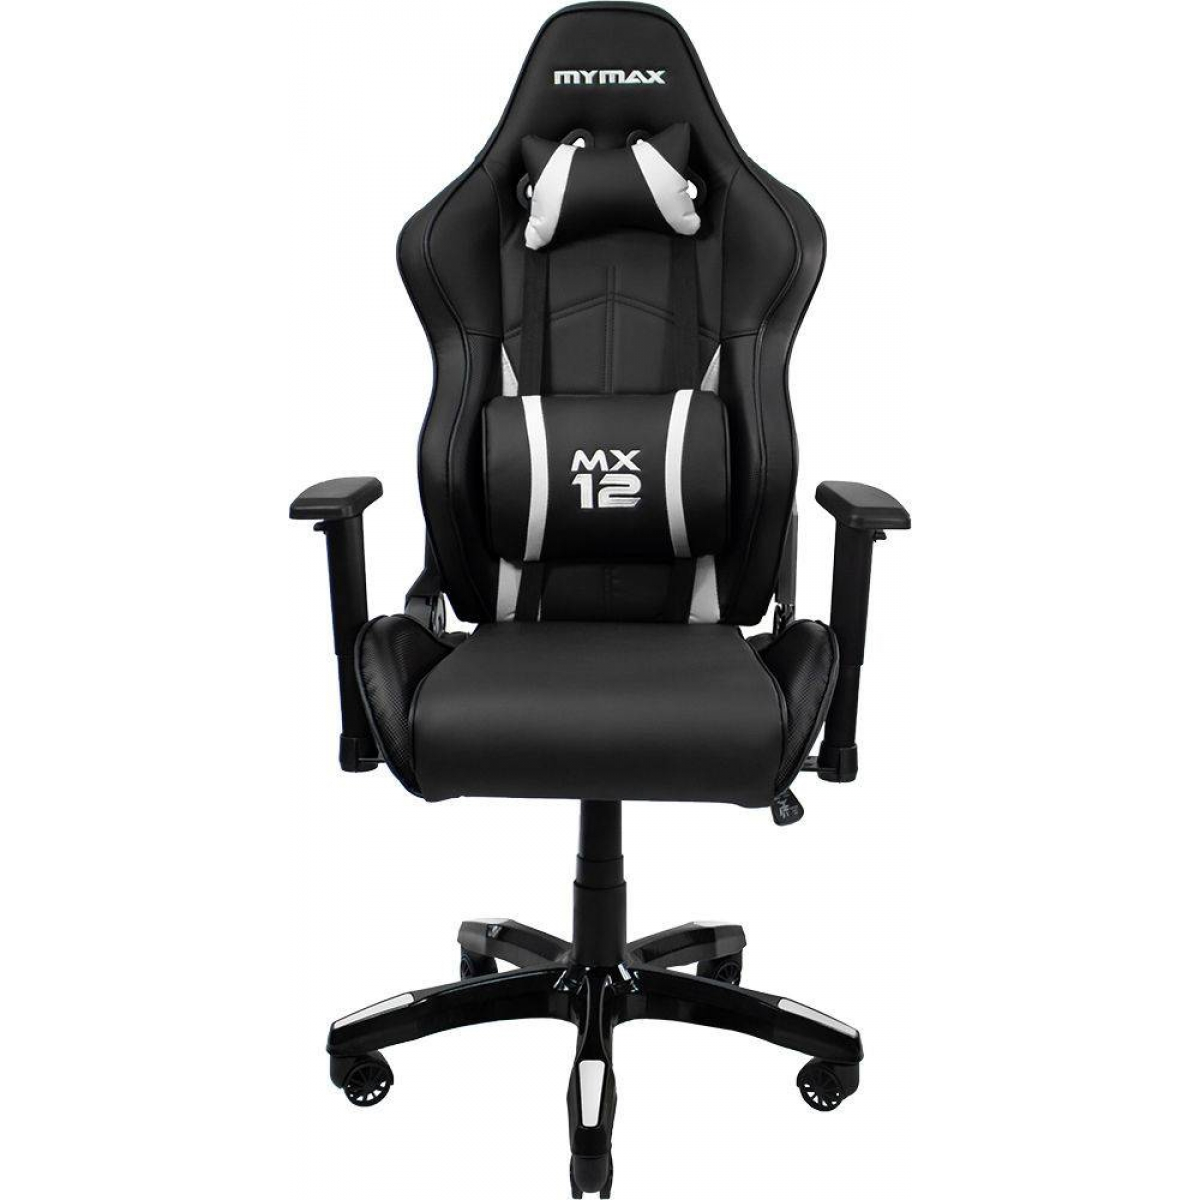 Cadeira Gamer Mymax MX12, Black-White